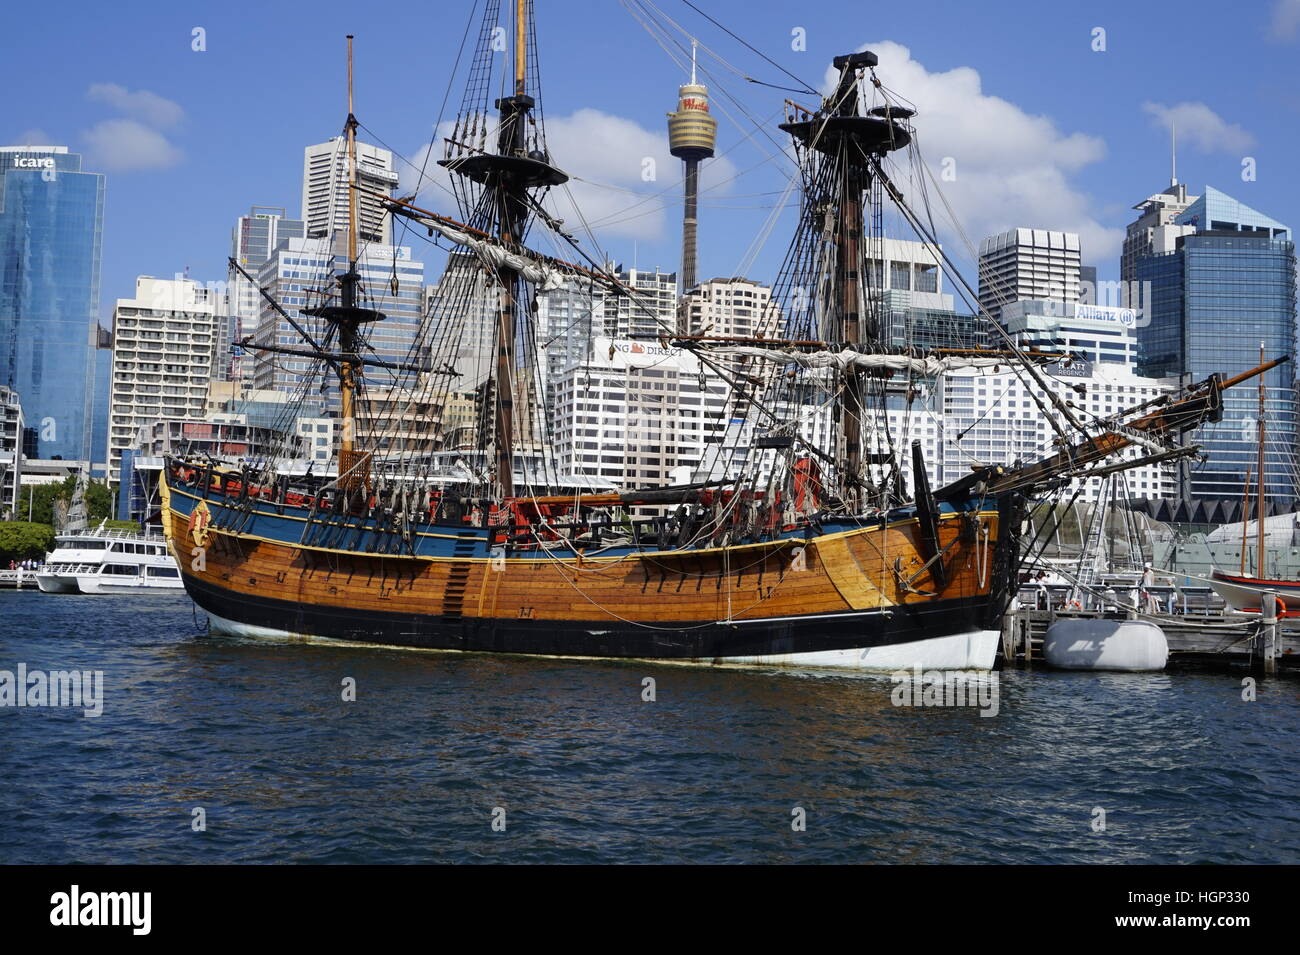 Ship in Darling Harbor, Sydney, Australia with the Sydney Tower Eye in the background. - Stock Image